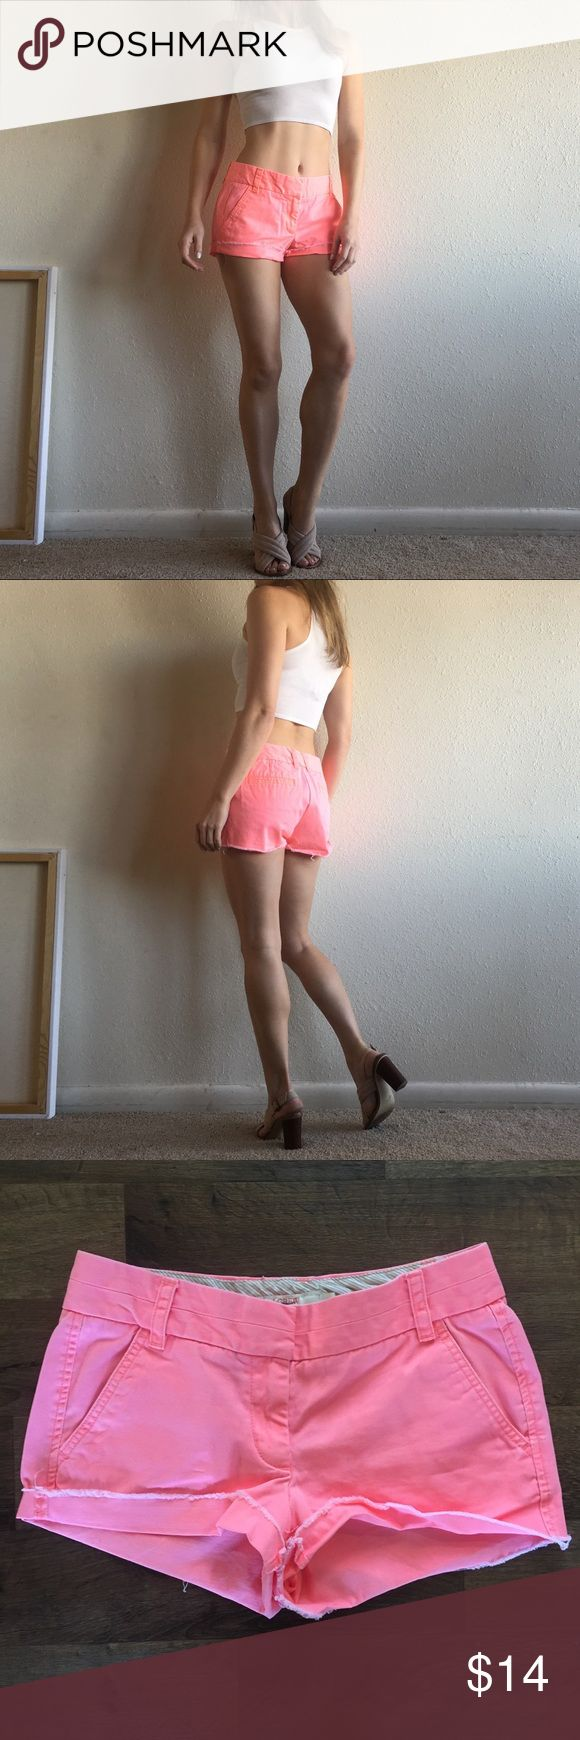 J. Crew Hot Pink Peach Shorts The perfect summer shorts in such an amazing statement color. I love these. J. Crew Shorts